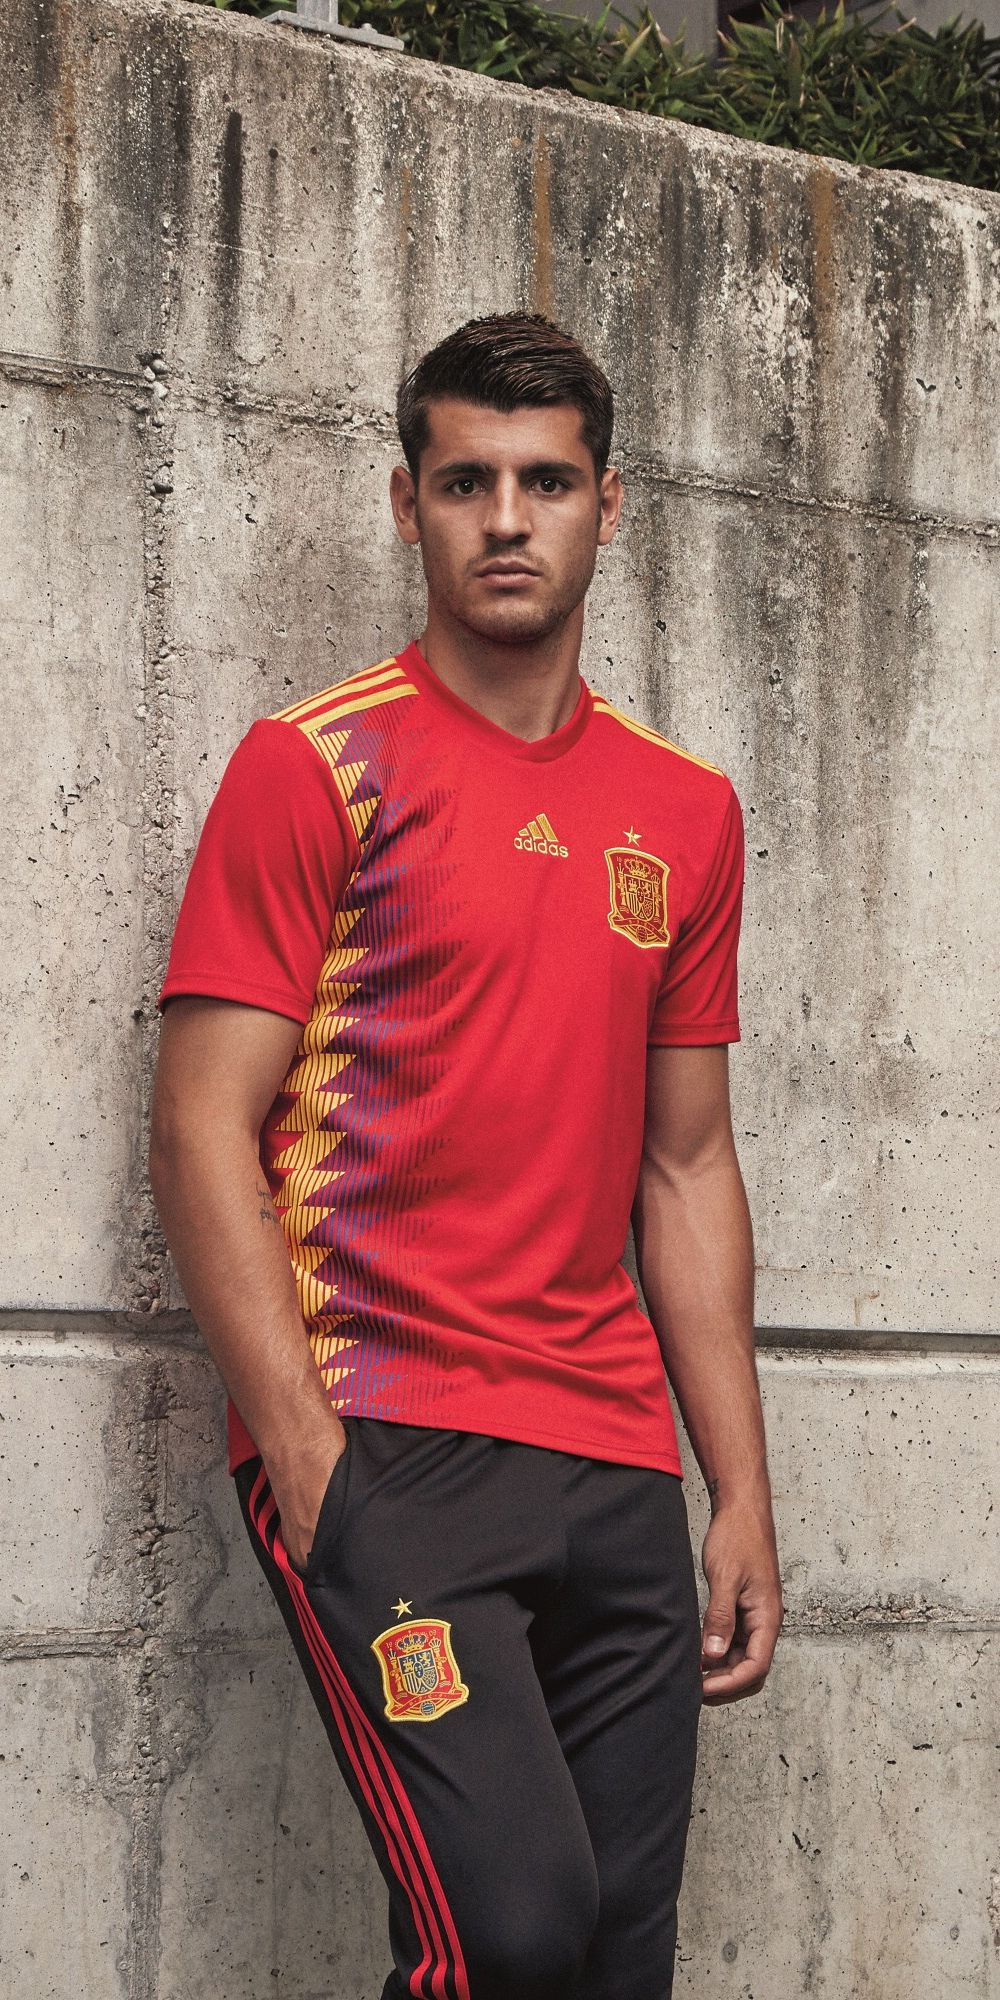 online retailer 331c5 f17dd Alvaro Morata in the adidas 2018 Spain home jersey